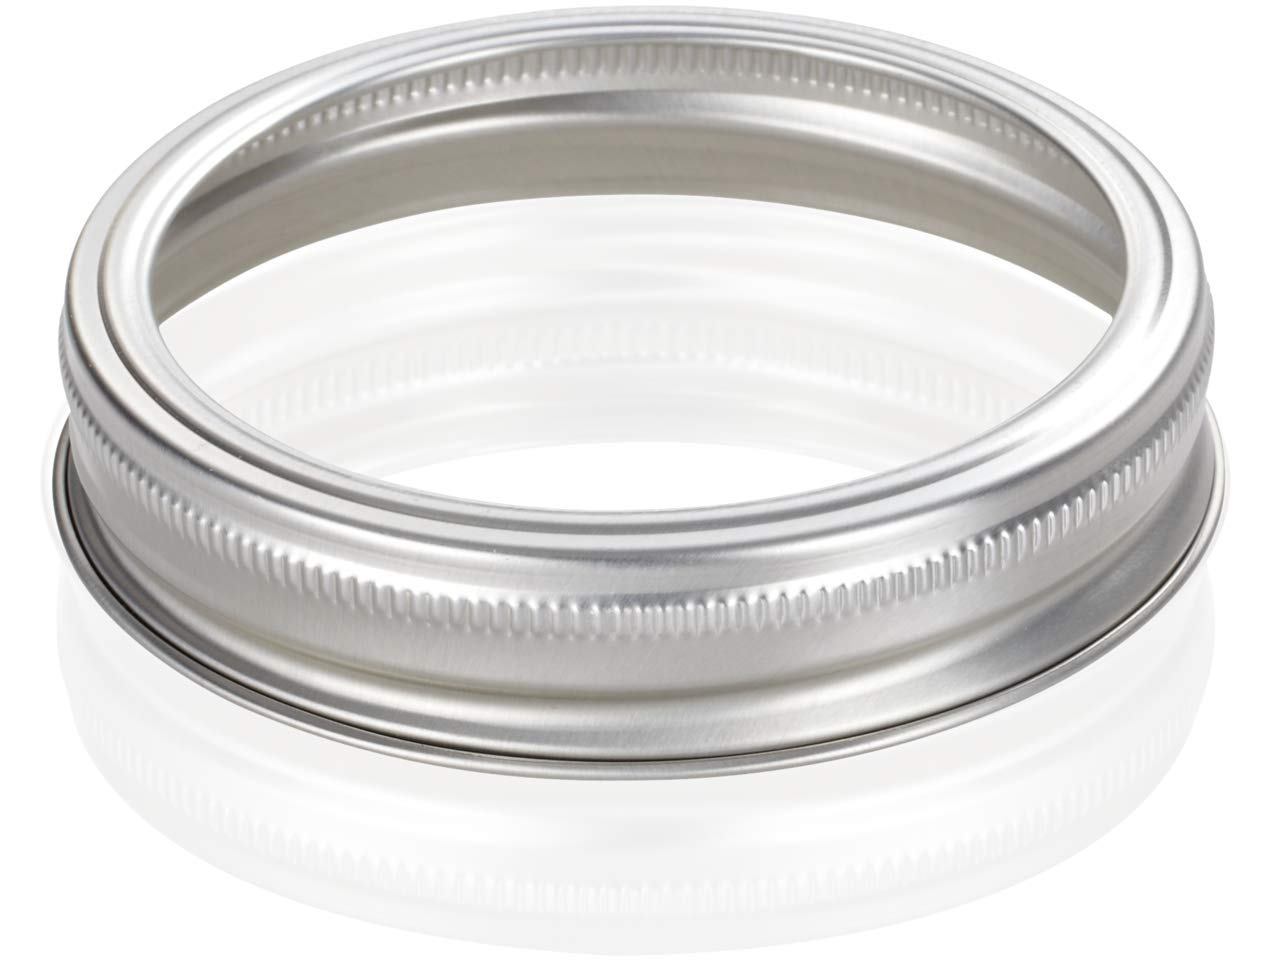 Leifheit Screw Rings for Preserving Jar(Pack of 12) 36401 EK 121610